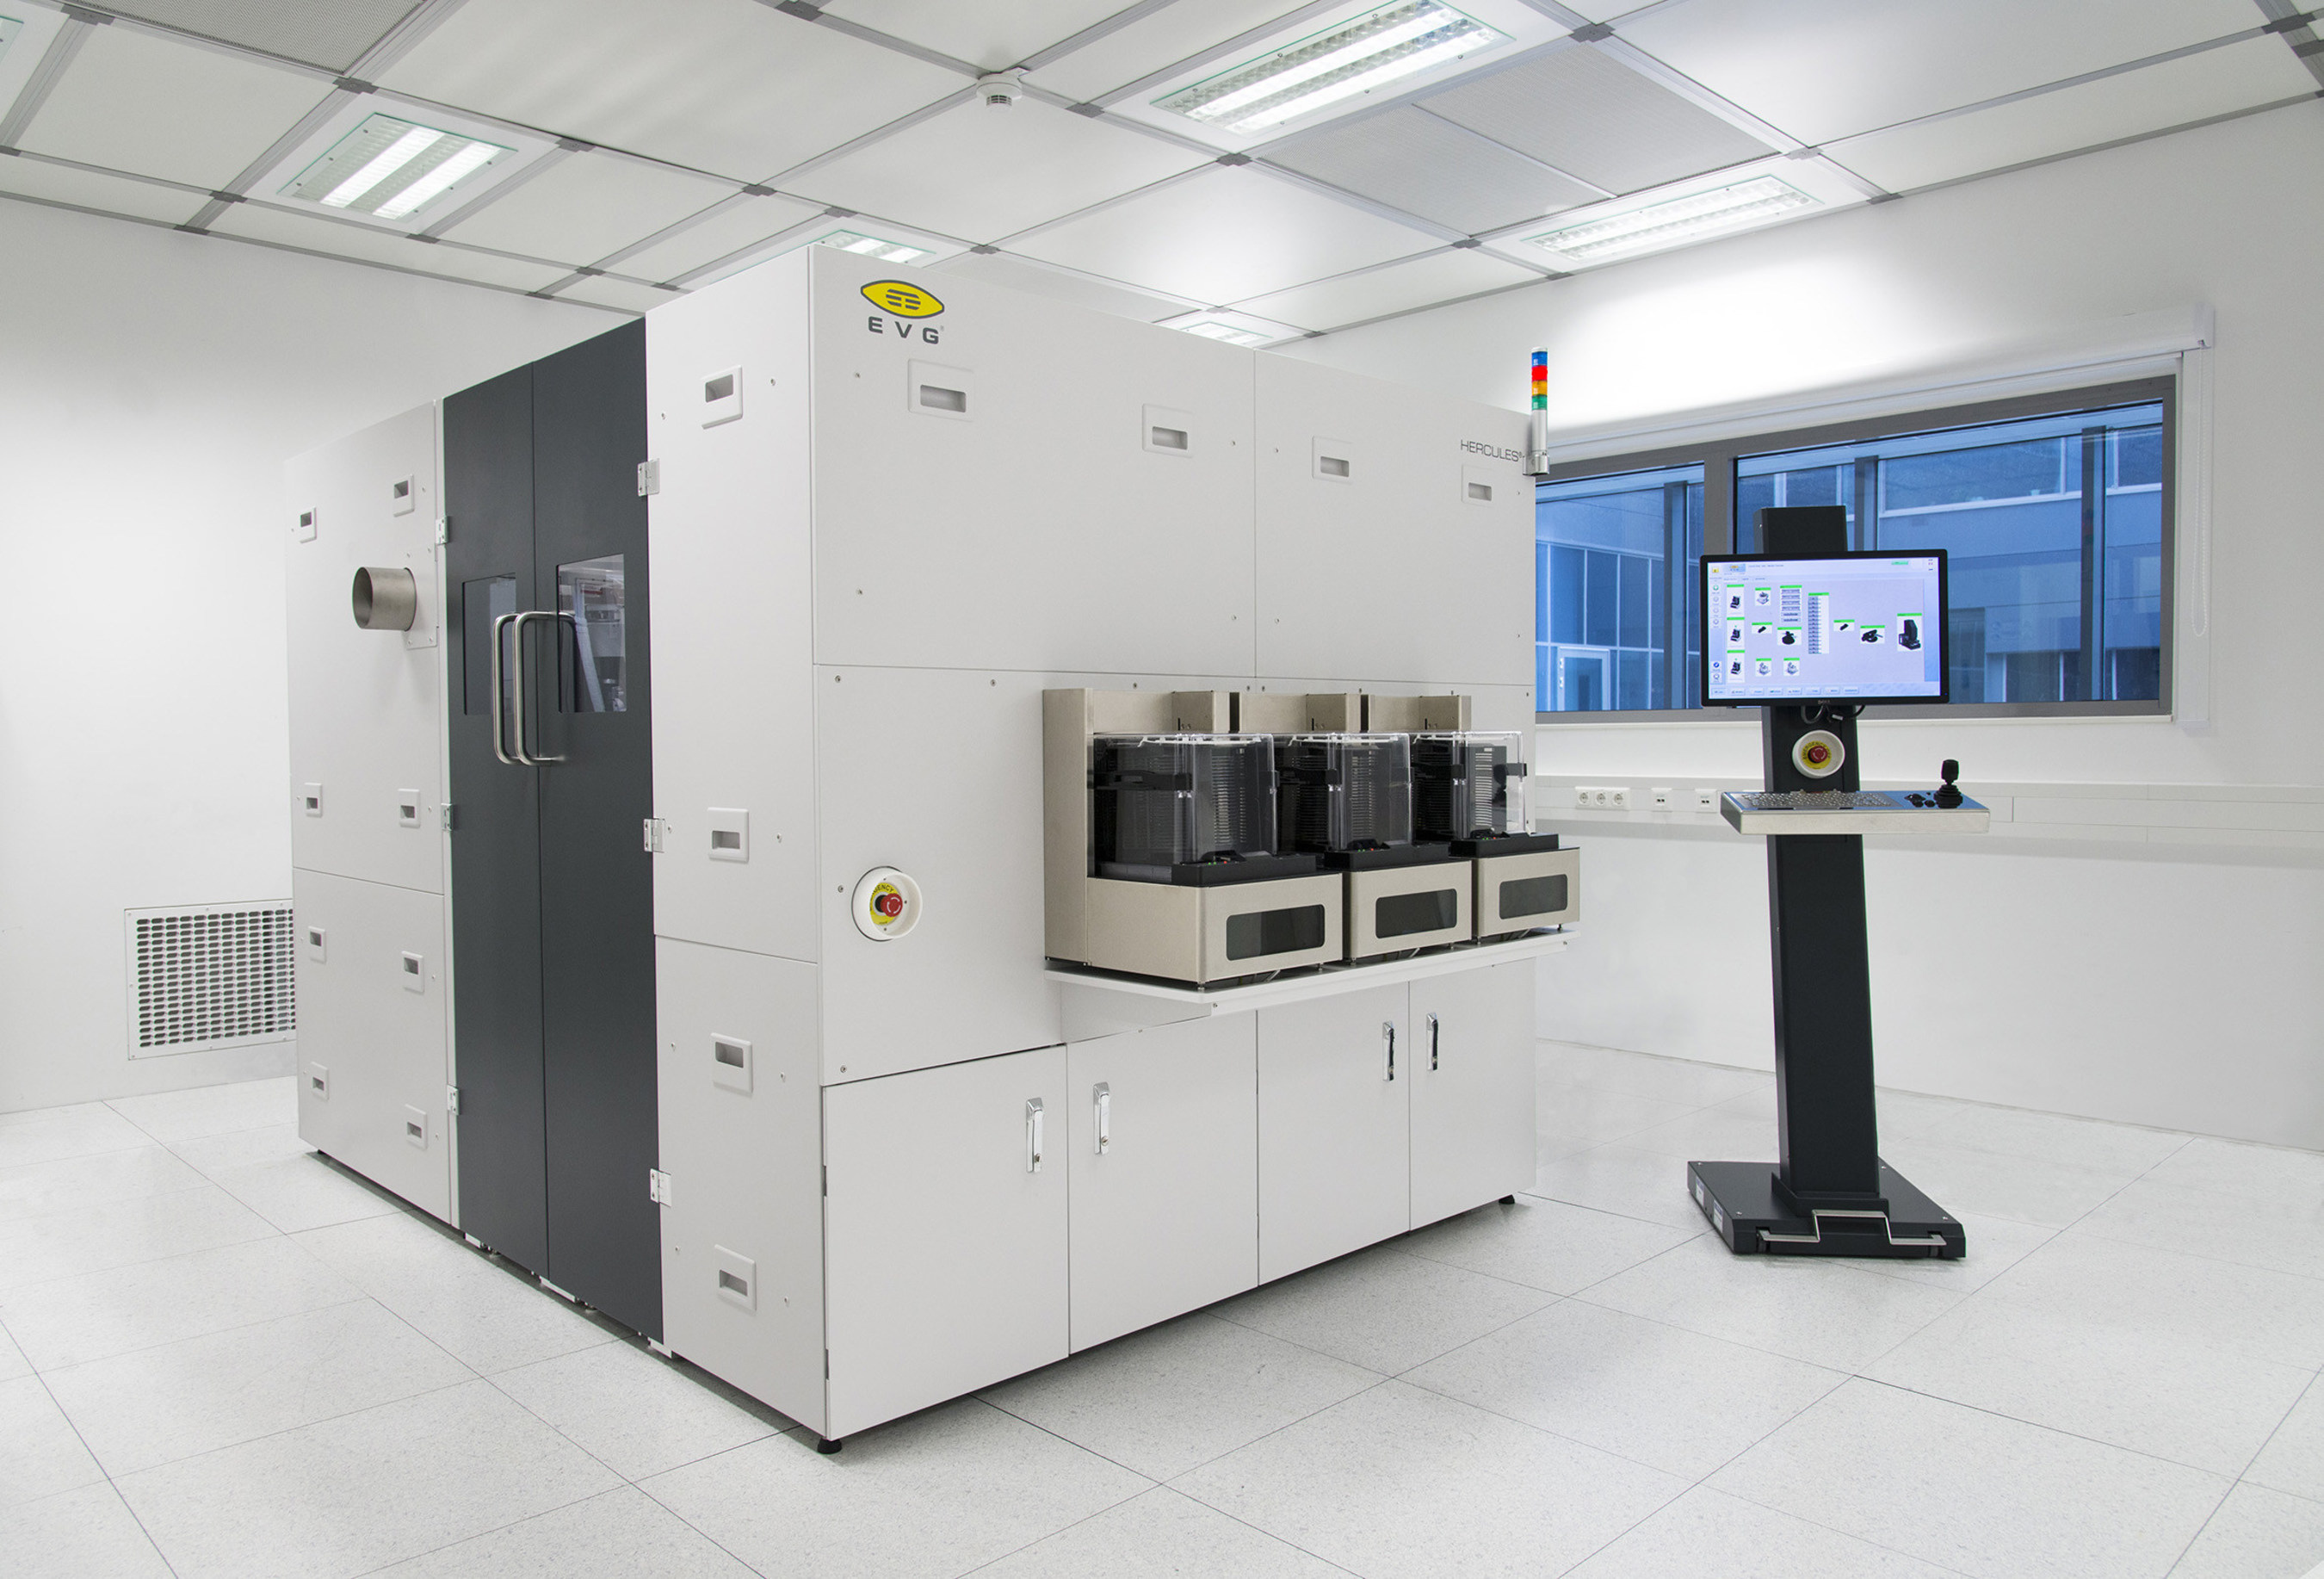 EV Group's HERCULES(R) NIL track system provides a complete, dedicated UV-NIL solution that is ideally suited for high-volume manufacturing of emerging photonic devices. It combines cleaning, resist coating and baking pre-processing steps with EVG's proprietary SmartNIL(TM) large-area nanoimprint lithography process in a single platform.